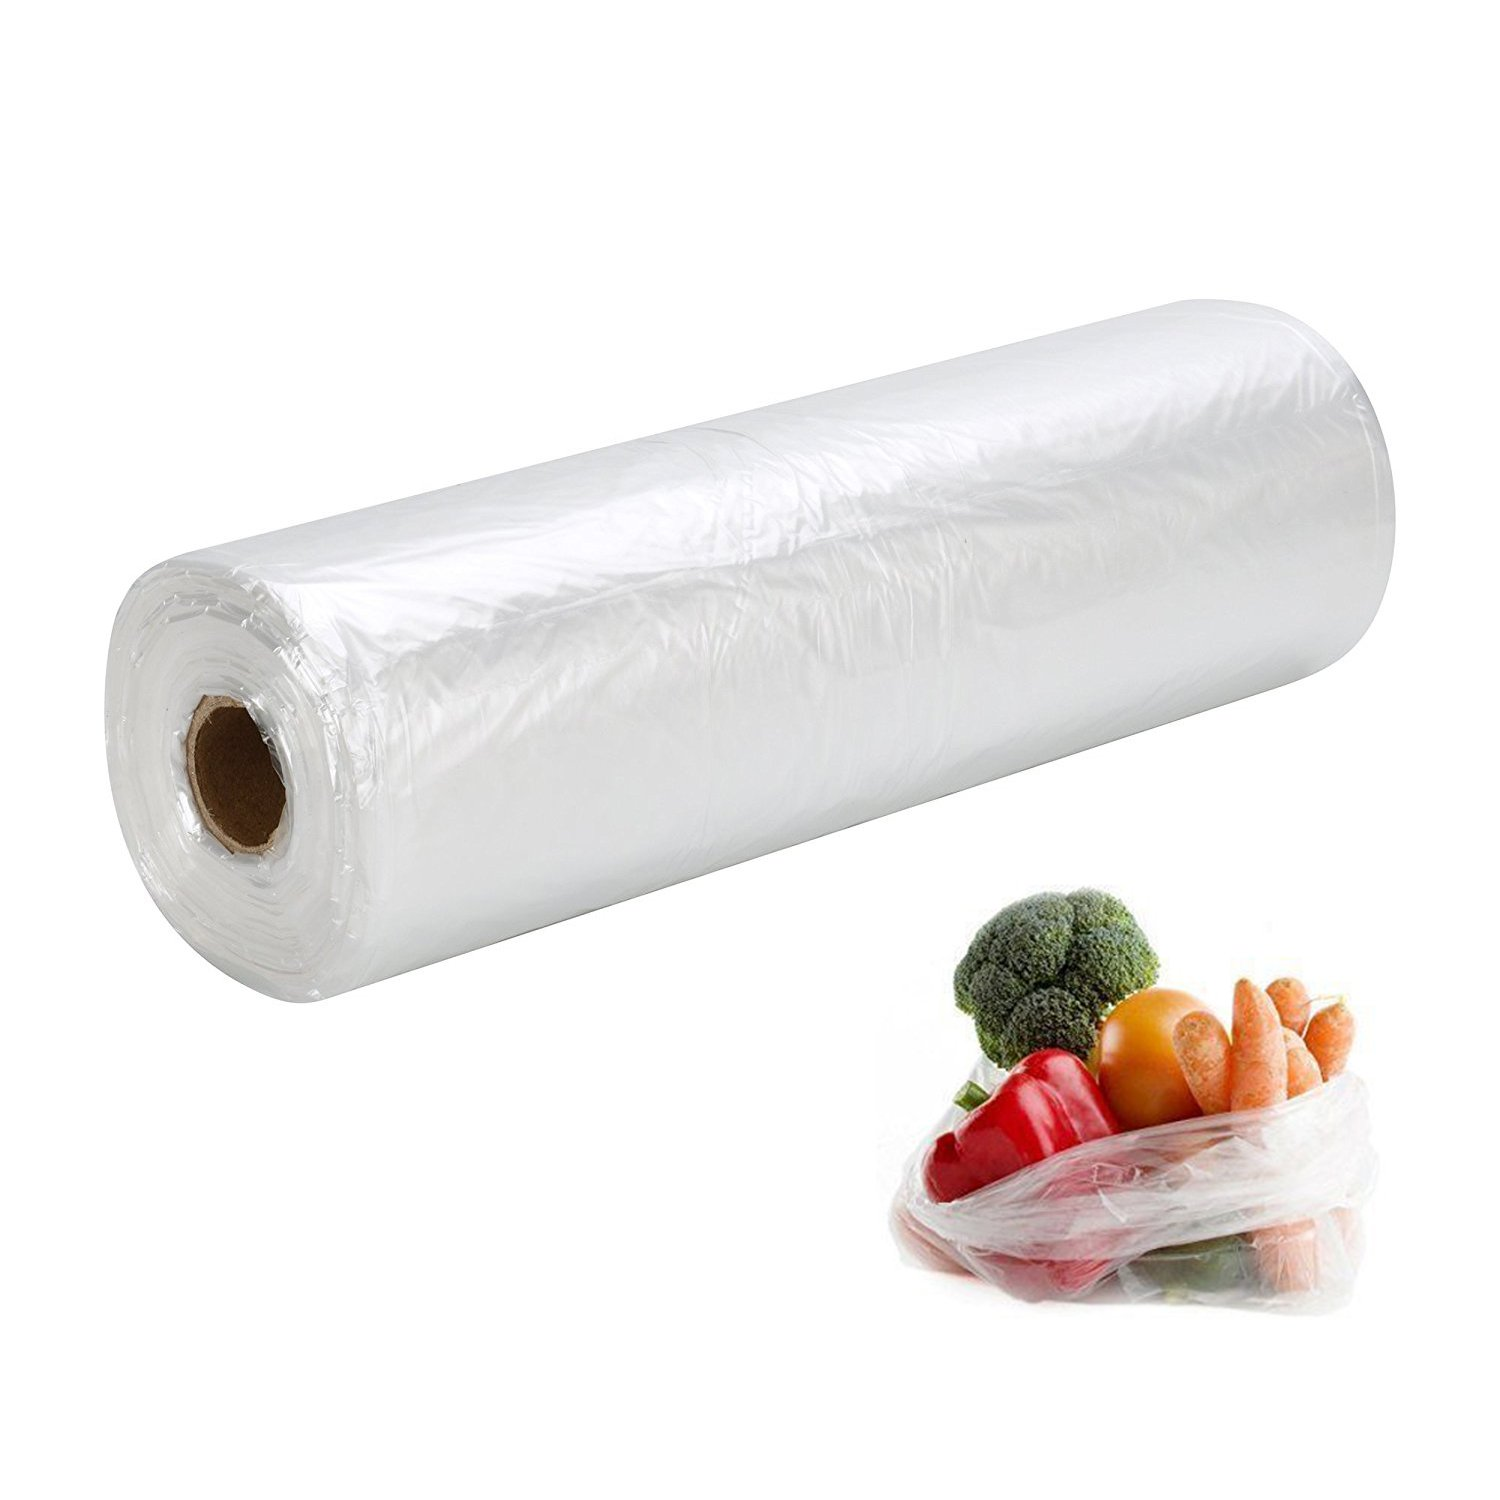 "PAPRMA Food Storage Bags, 12"" X 20"" Clear Plastic Produce Bag for Fruits, Vegetable, Kitchen Bags On a Roll, 350pcs/Roll, 1 Roll"